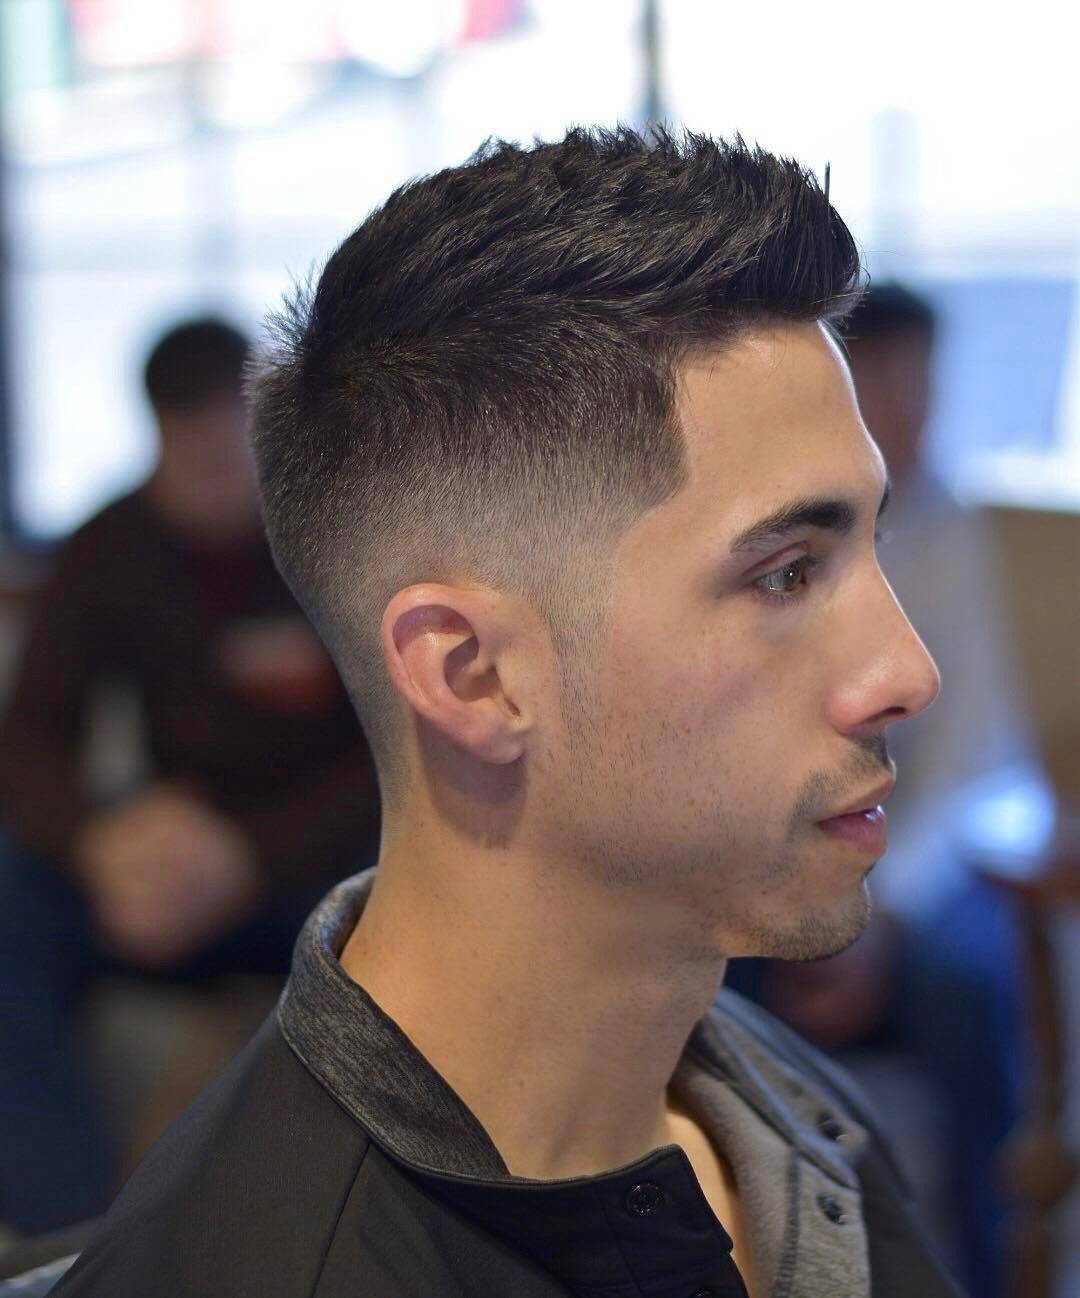 Amazing Military Haircut Styles For Guys Tags military haircuts